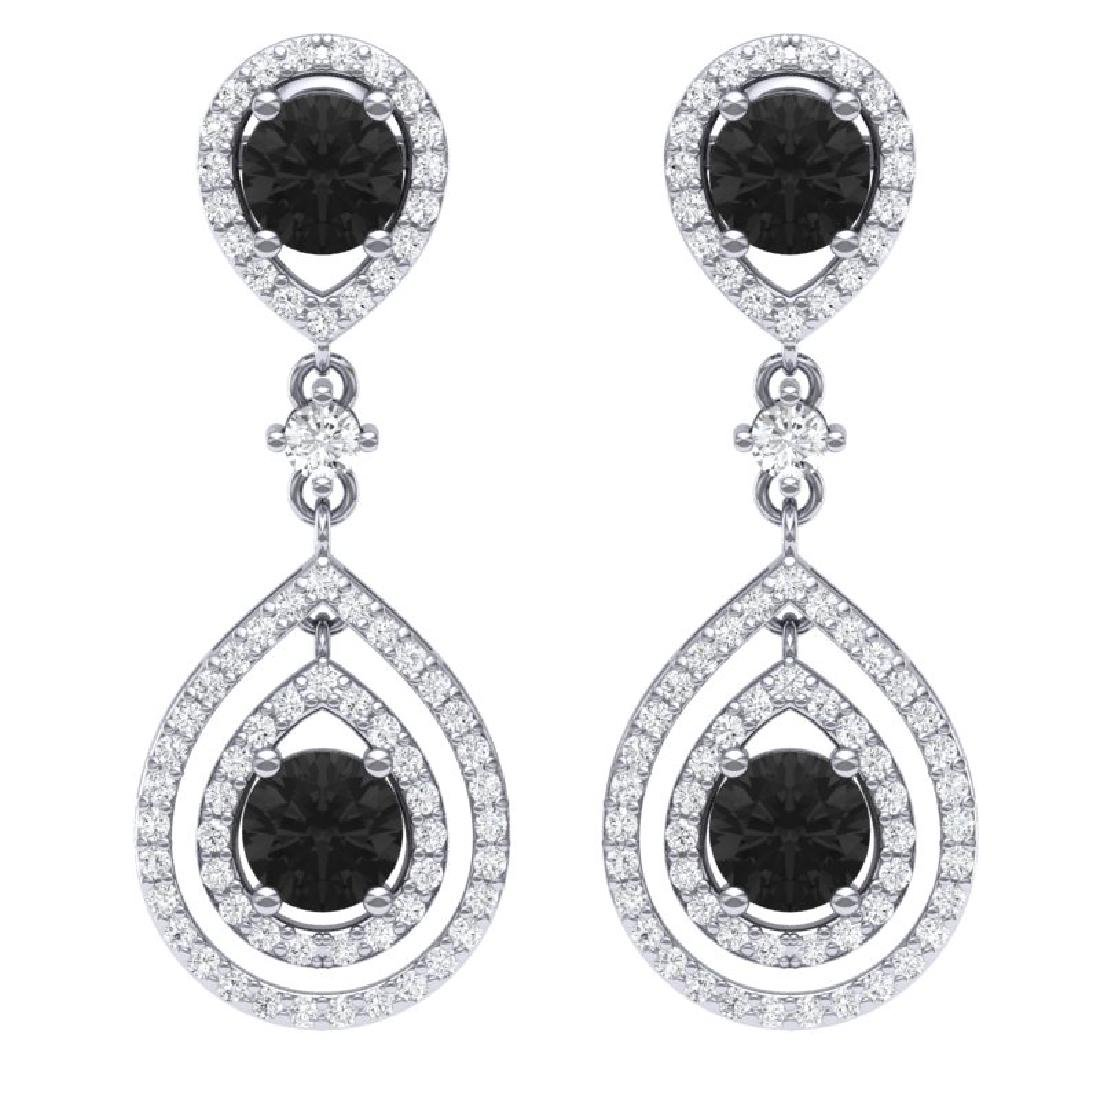 3.62 CTW Certified Black VS Diamond Earrings 18K White